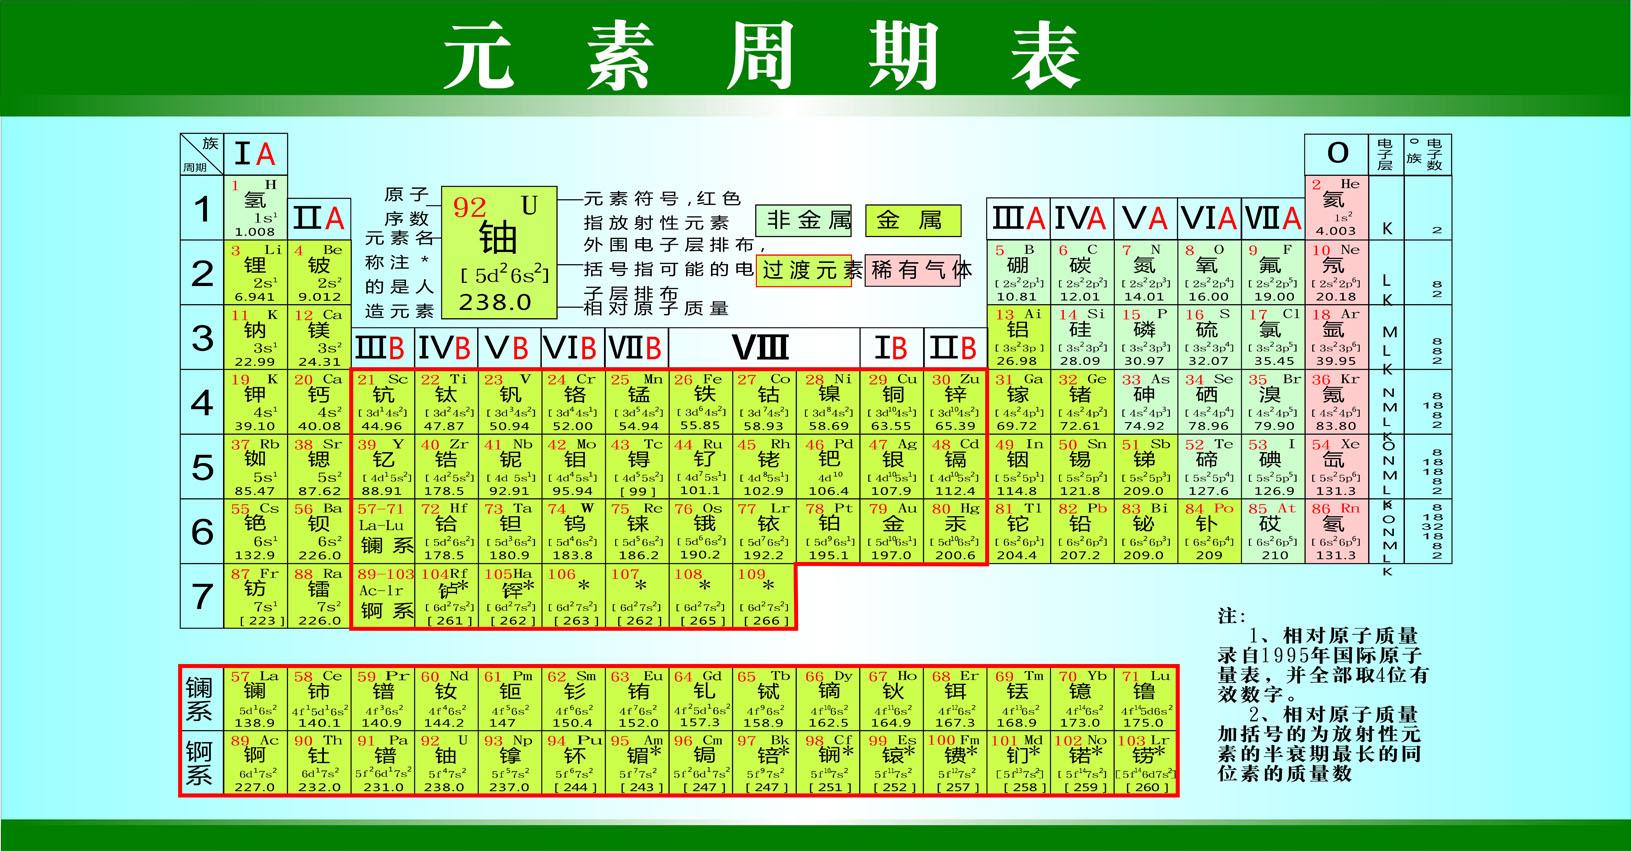 Buy periodic table of chemical periodic table poster layout 115 chemical science knowledge poster panels footage 68 chemical periodic table gamestrikefo Image collections